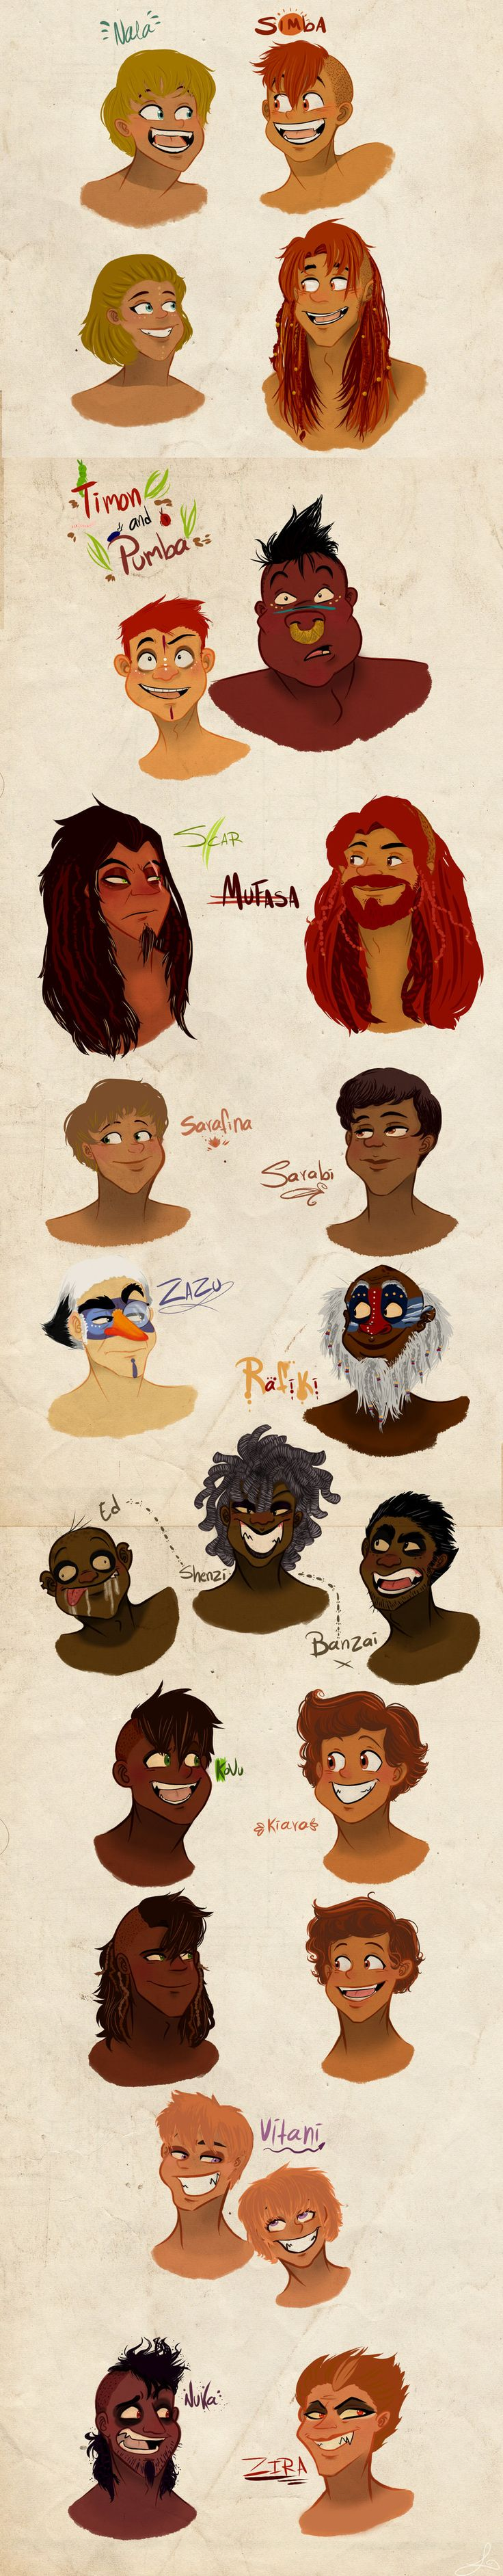 the lion king s inspiration Disney's the lion guard: return of the roar recruited real swahili musicians to give series similar feel to the smash hit film the lion king.